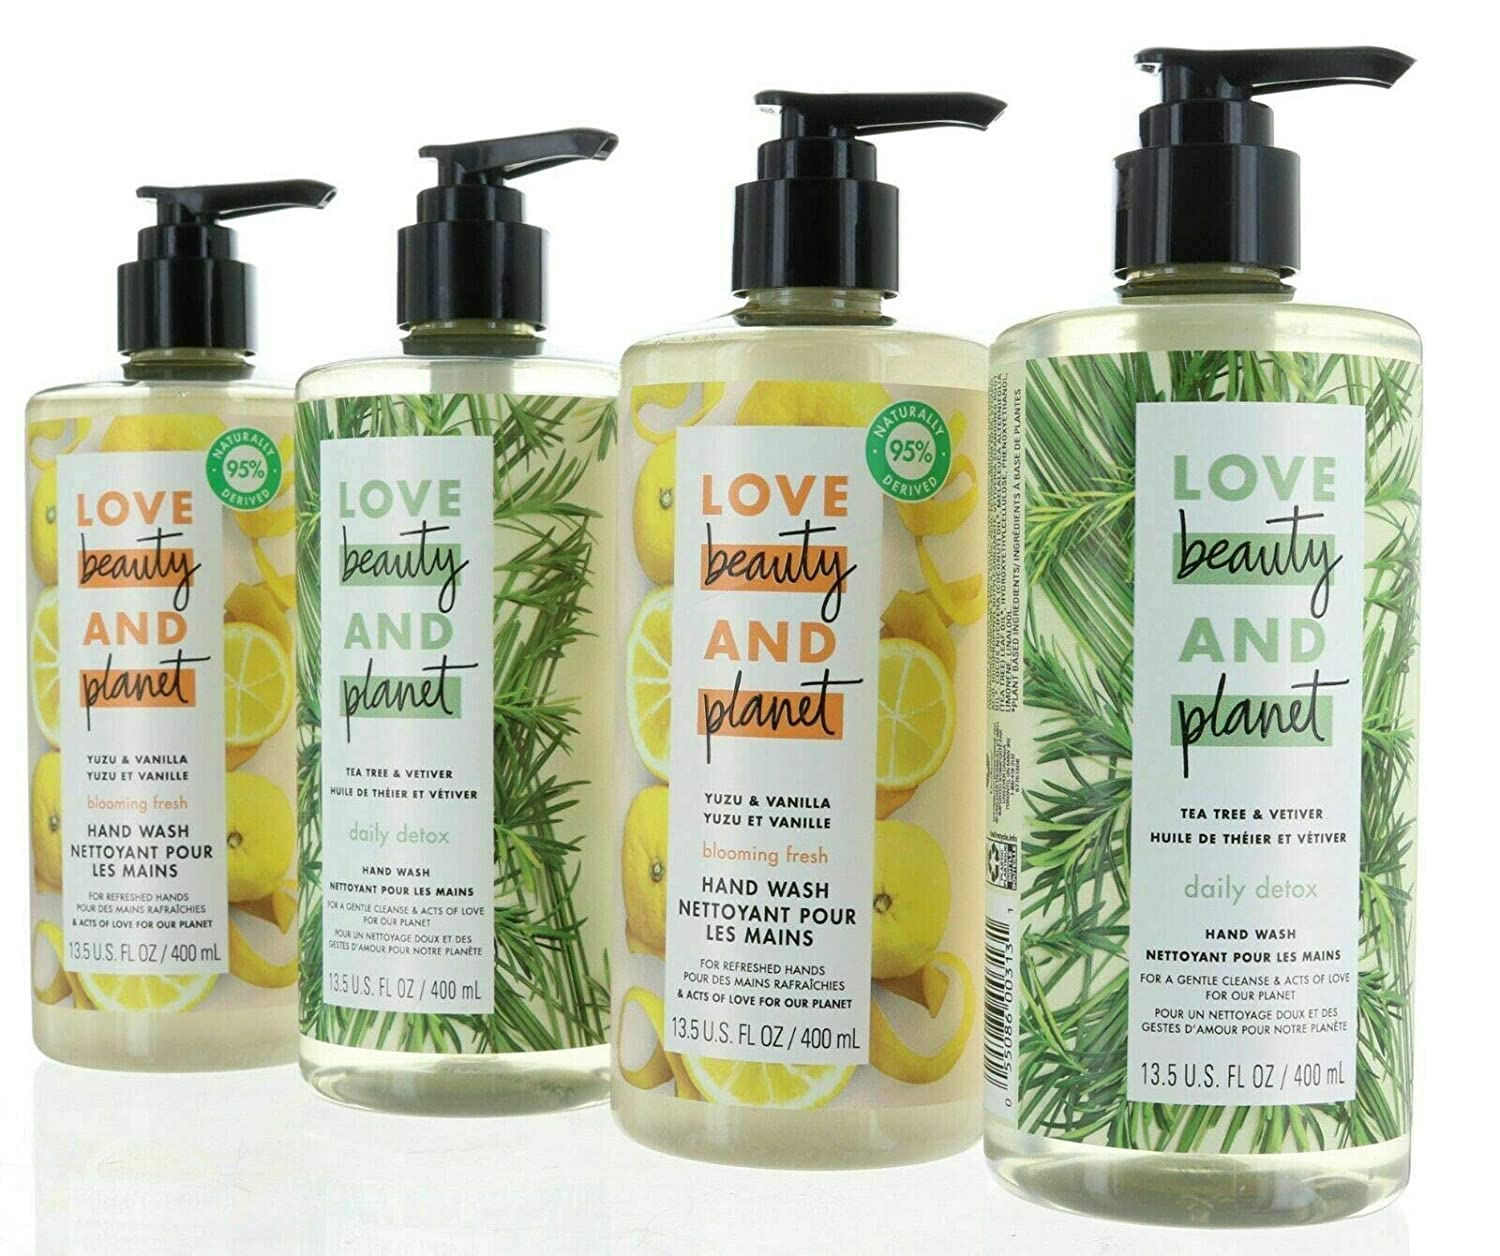 Love Beauty And Planet Store Yuzu and Vanilla liquid and Tea Tree and Vetiver Hand Wash 13.5 Oz (4 Pack) 2 of each flavor